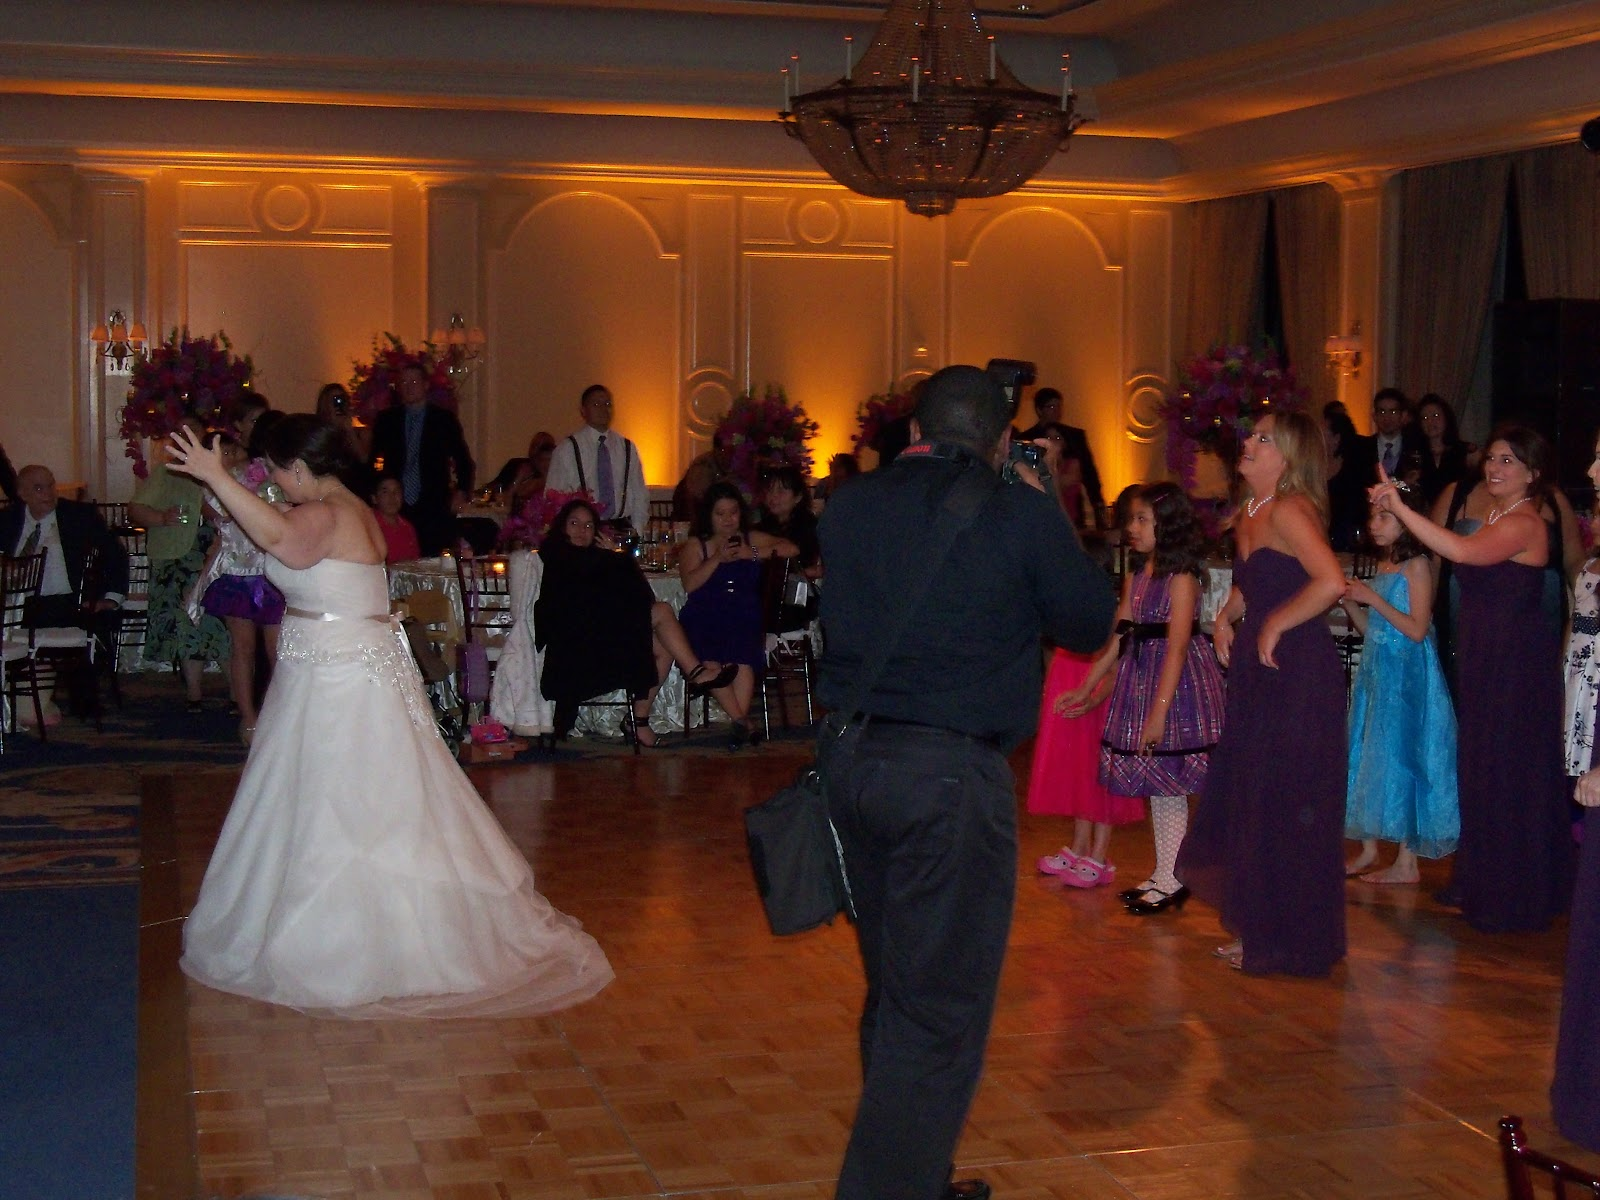 Megan Neal and Mark Suarez wedding - 100_8461.JPG